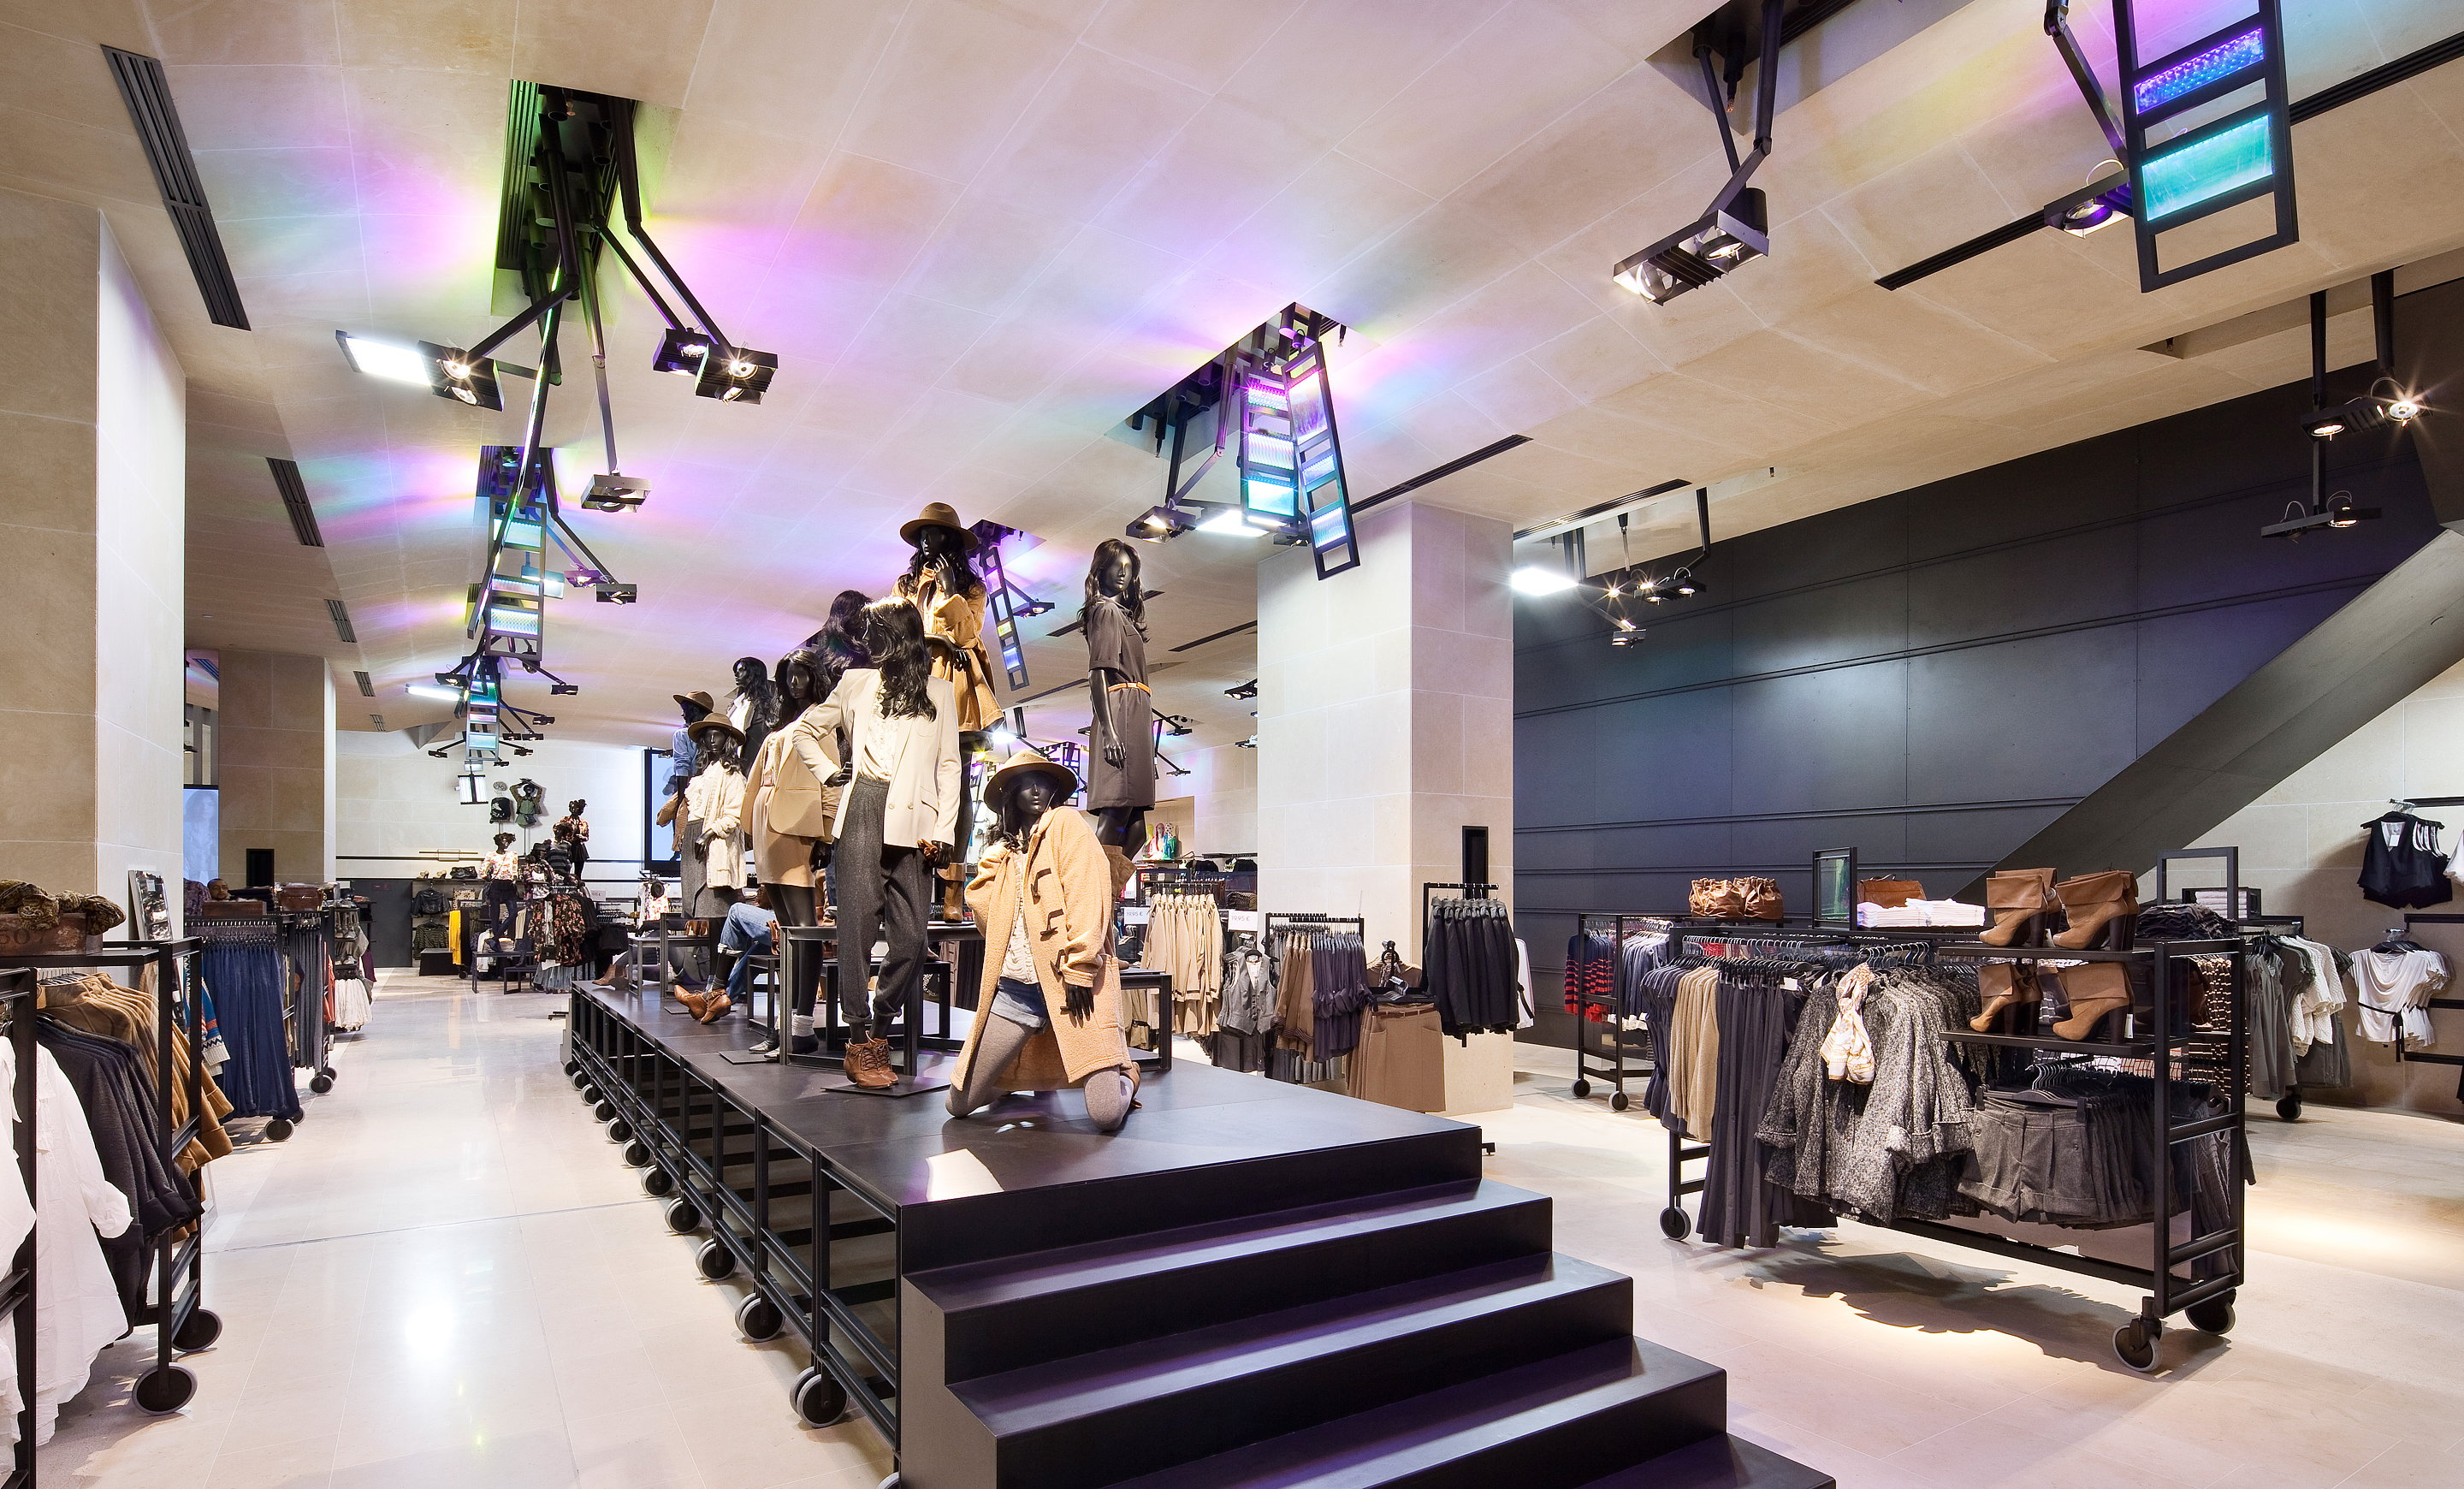 100 Incroyable Suggestions H&m Fontenay Sous Bois